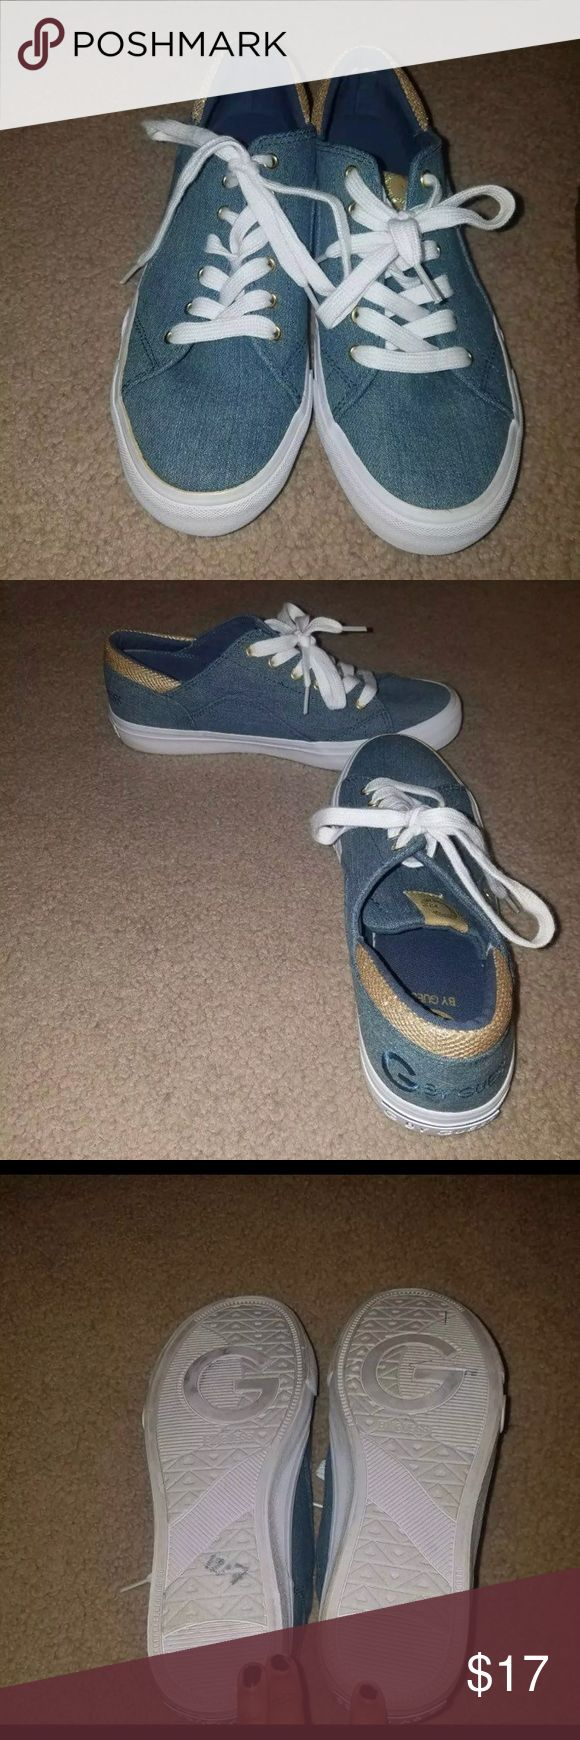 G By Guess *ALWAYS UP FOR OFFERS* G by guess sneakers. Size 8.5. Excellent condition. Smoke free home G by Guess Shoes Sneakers